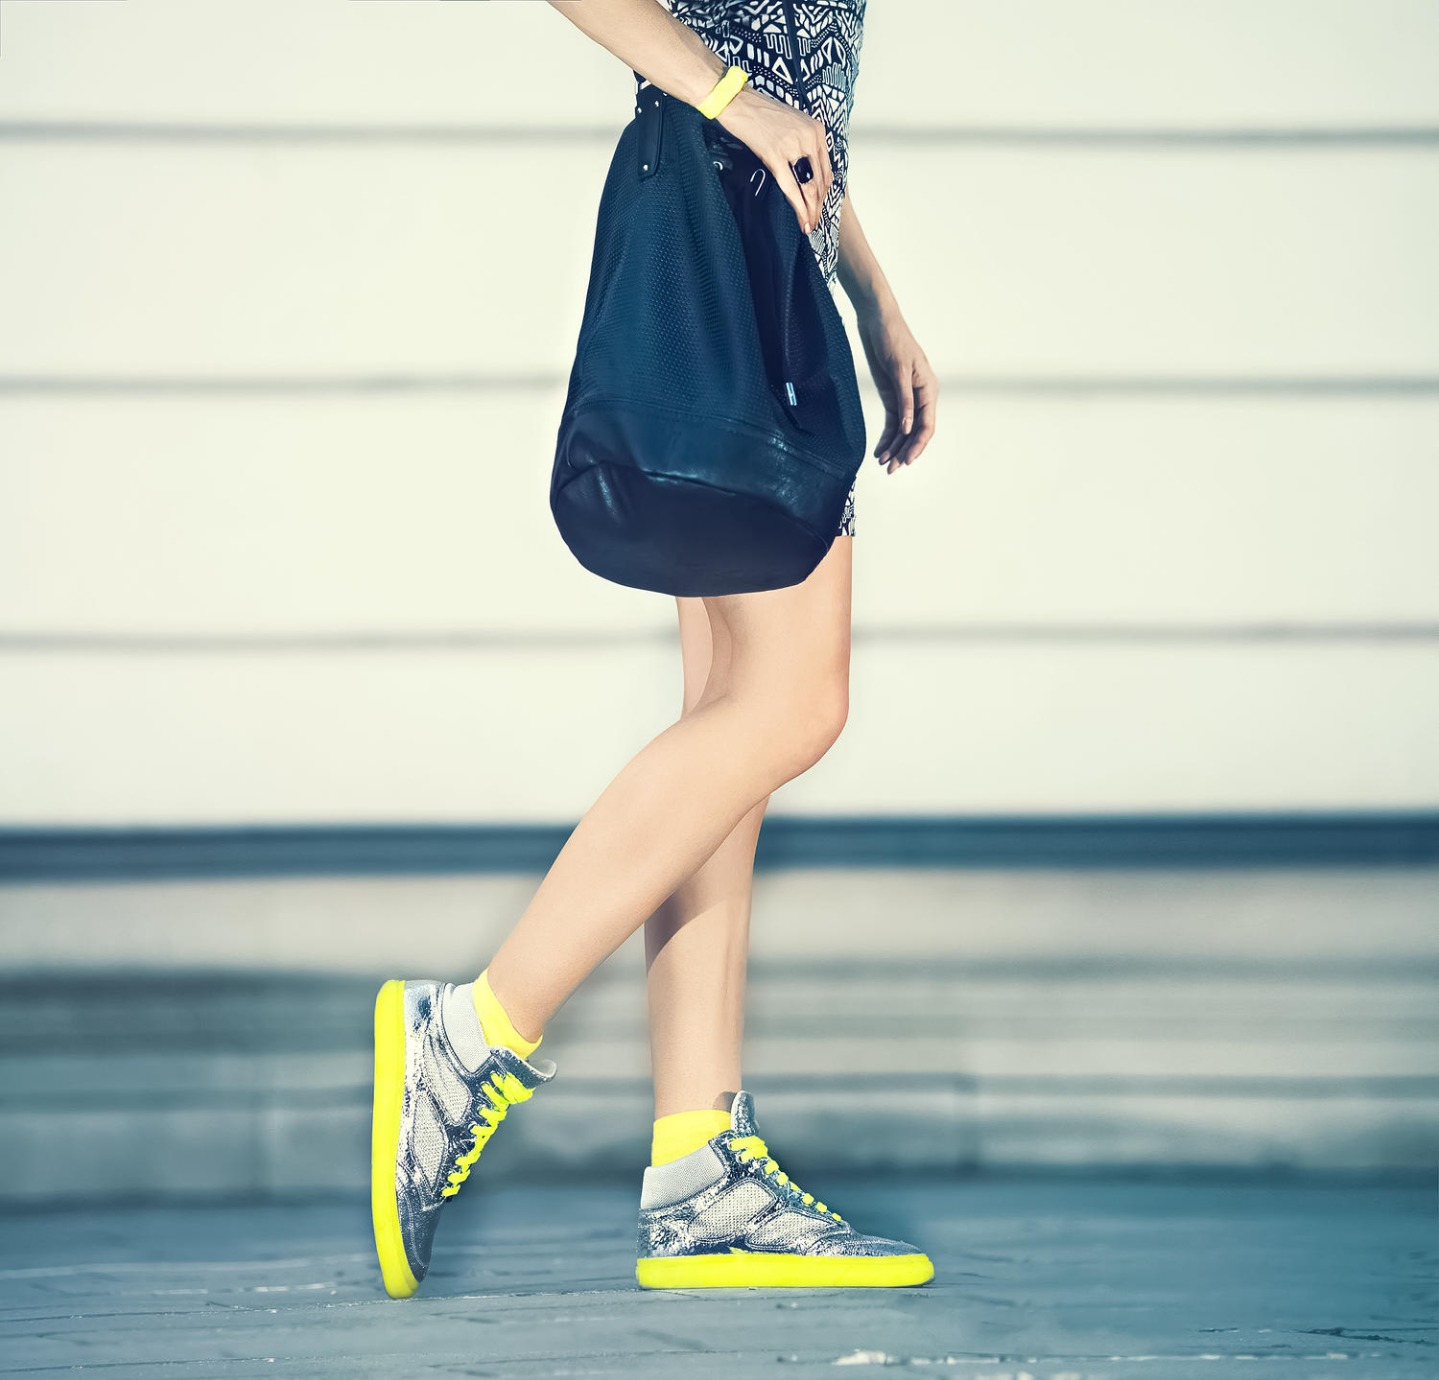 Girl with Yellow Sneakers 2015-12-28-19:37:42